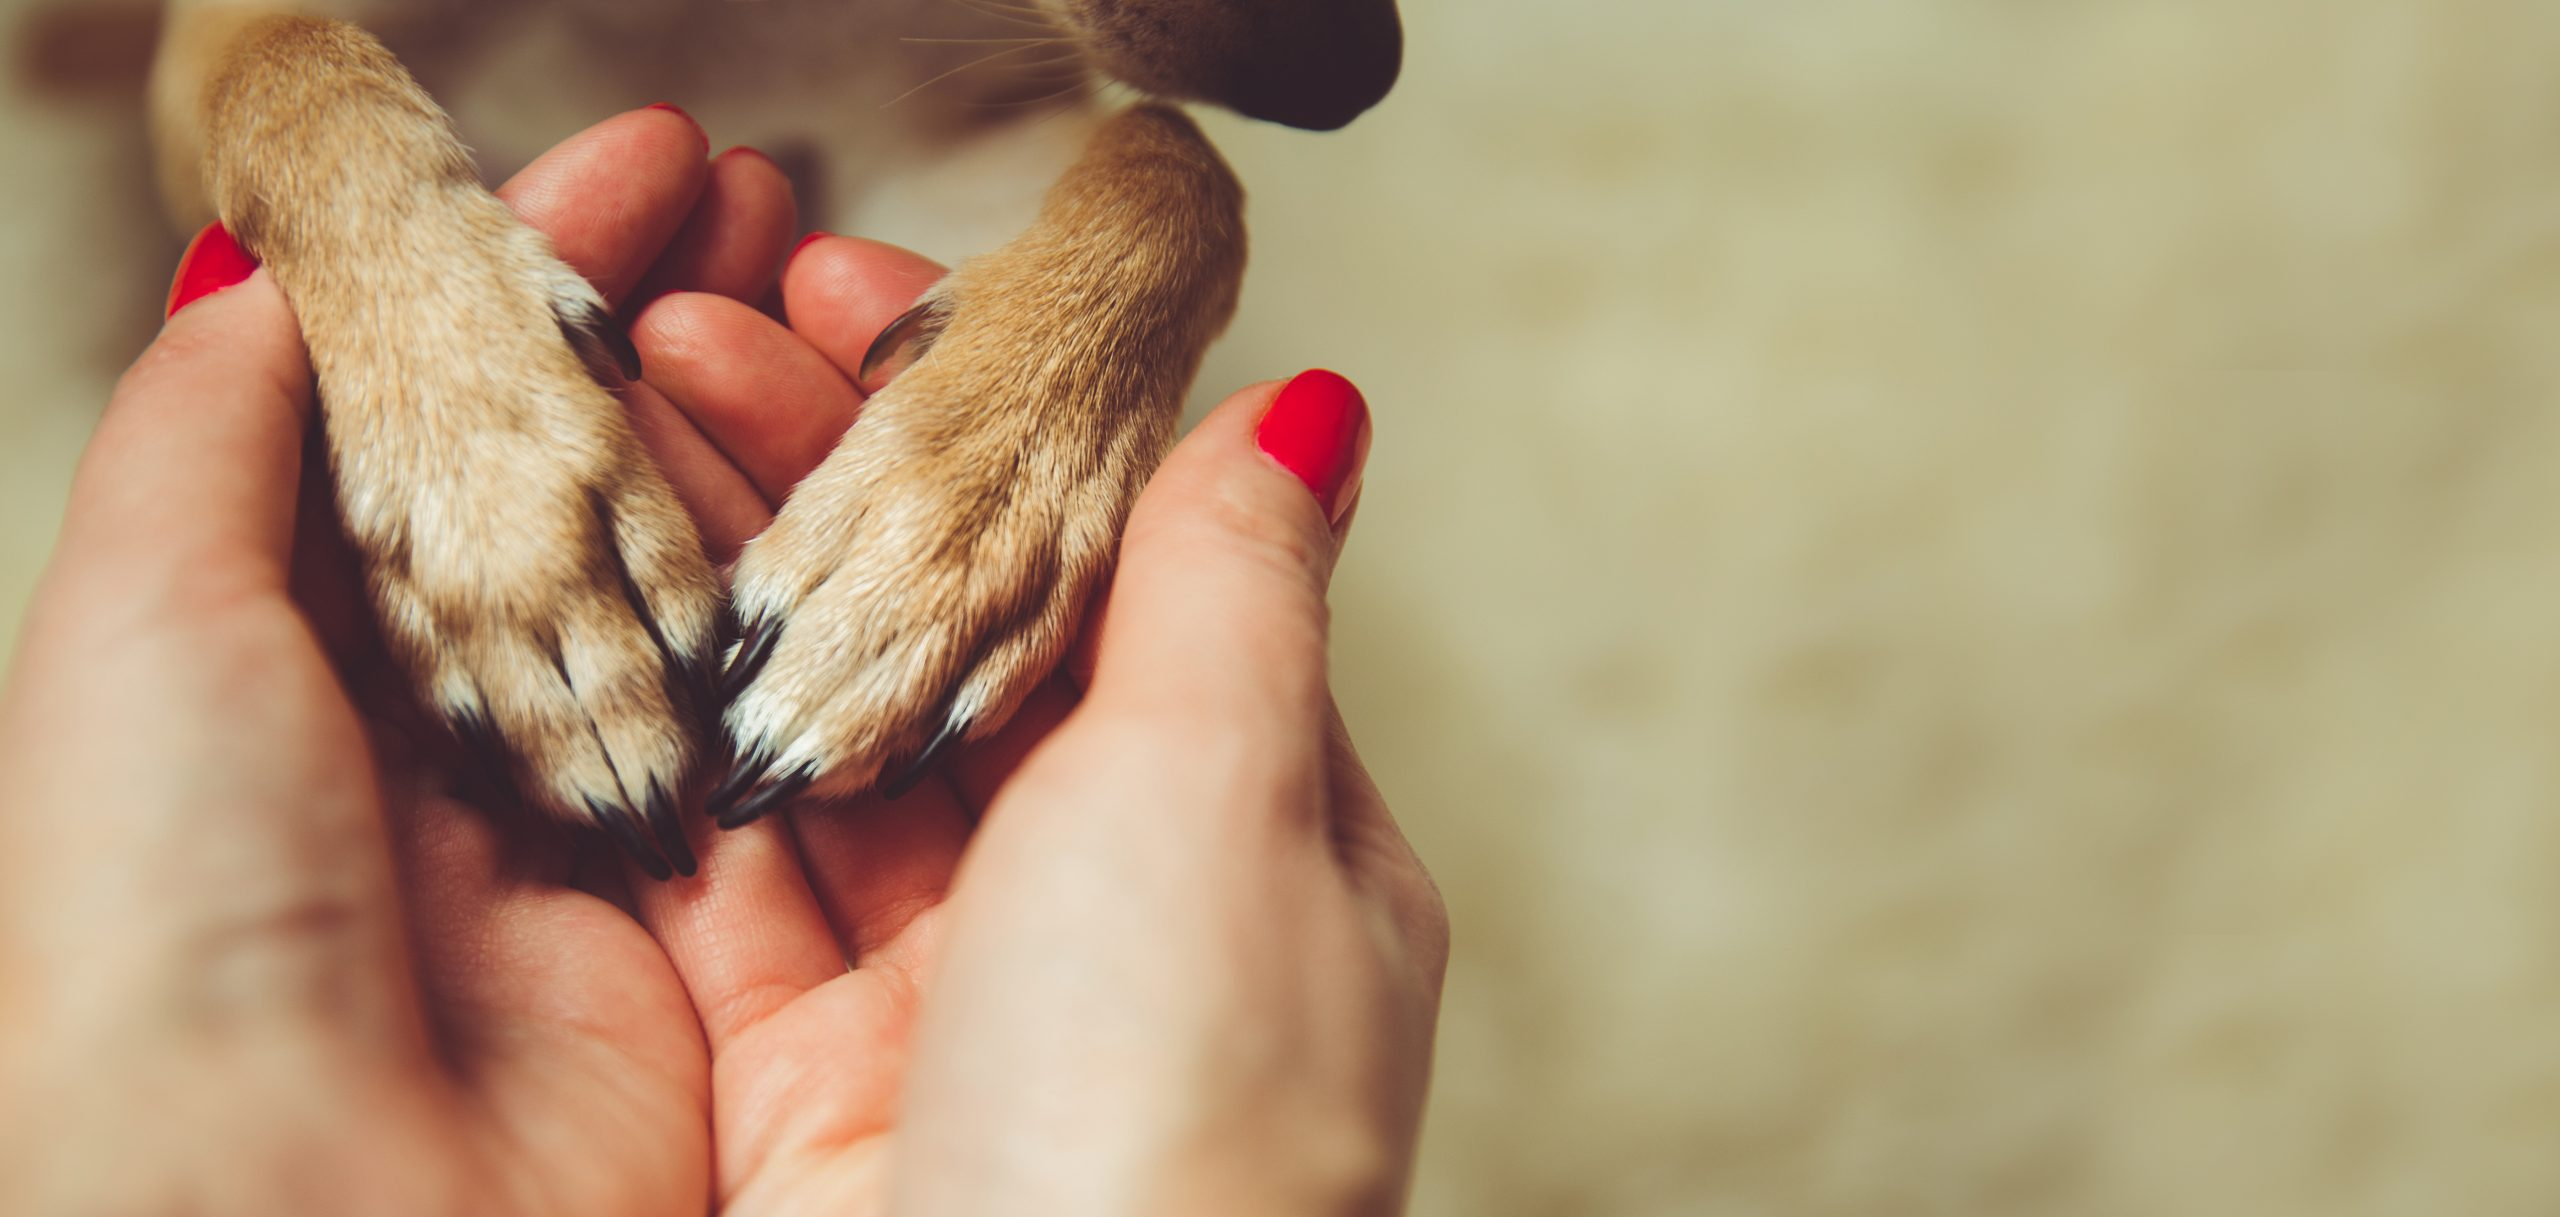 paws in hands